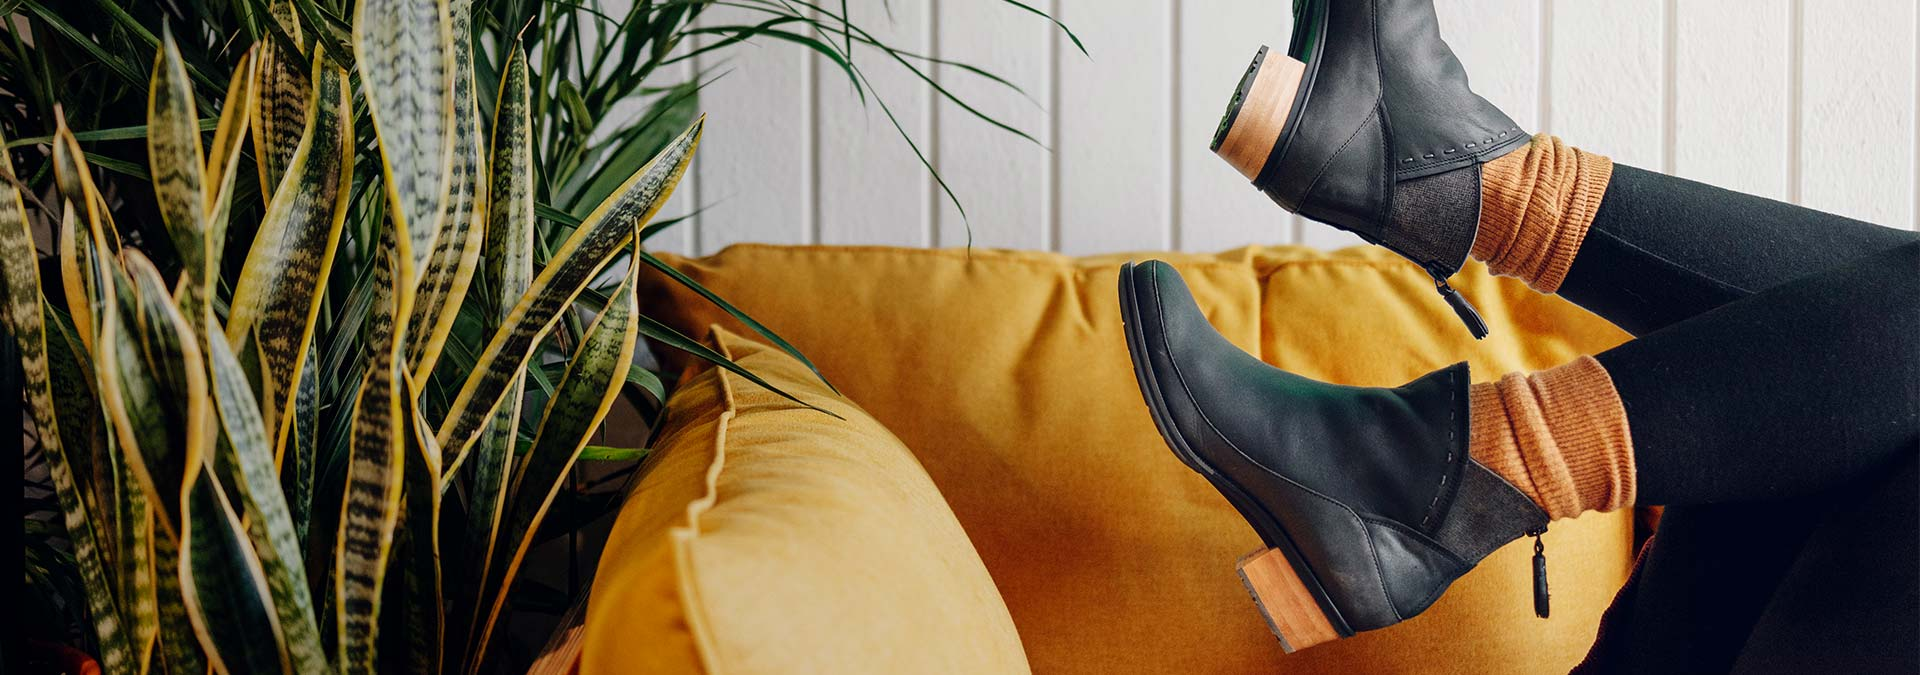 Kick up your Cataluna Mid heels with these stylish boots from Chaco.